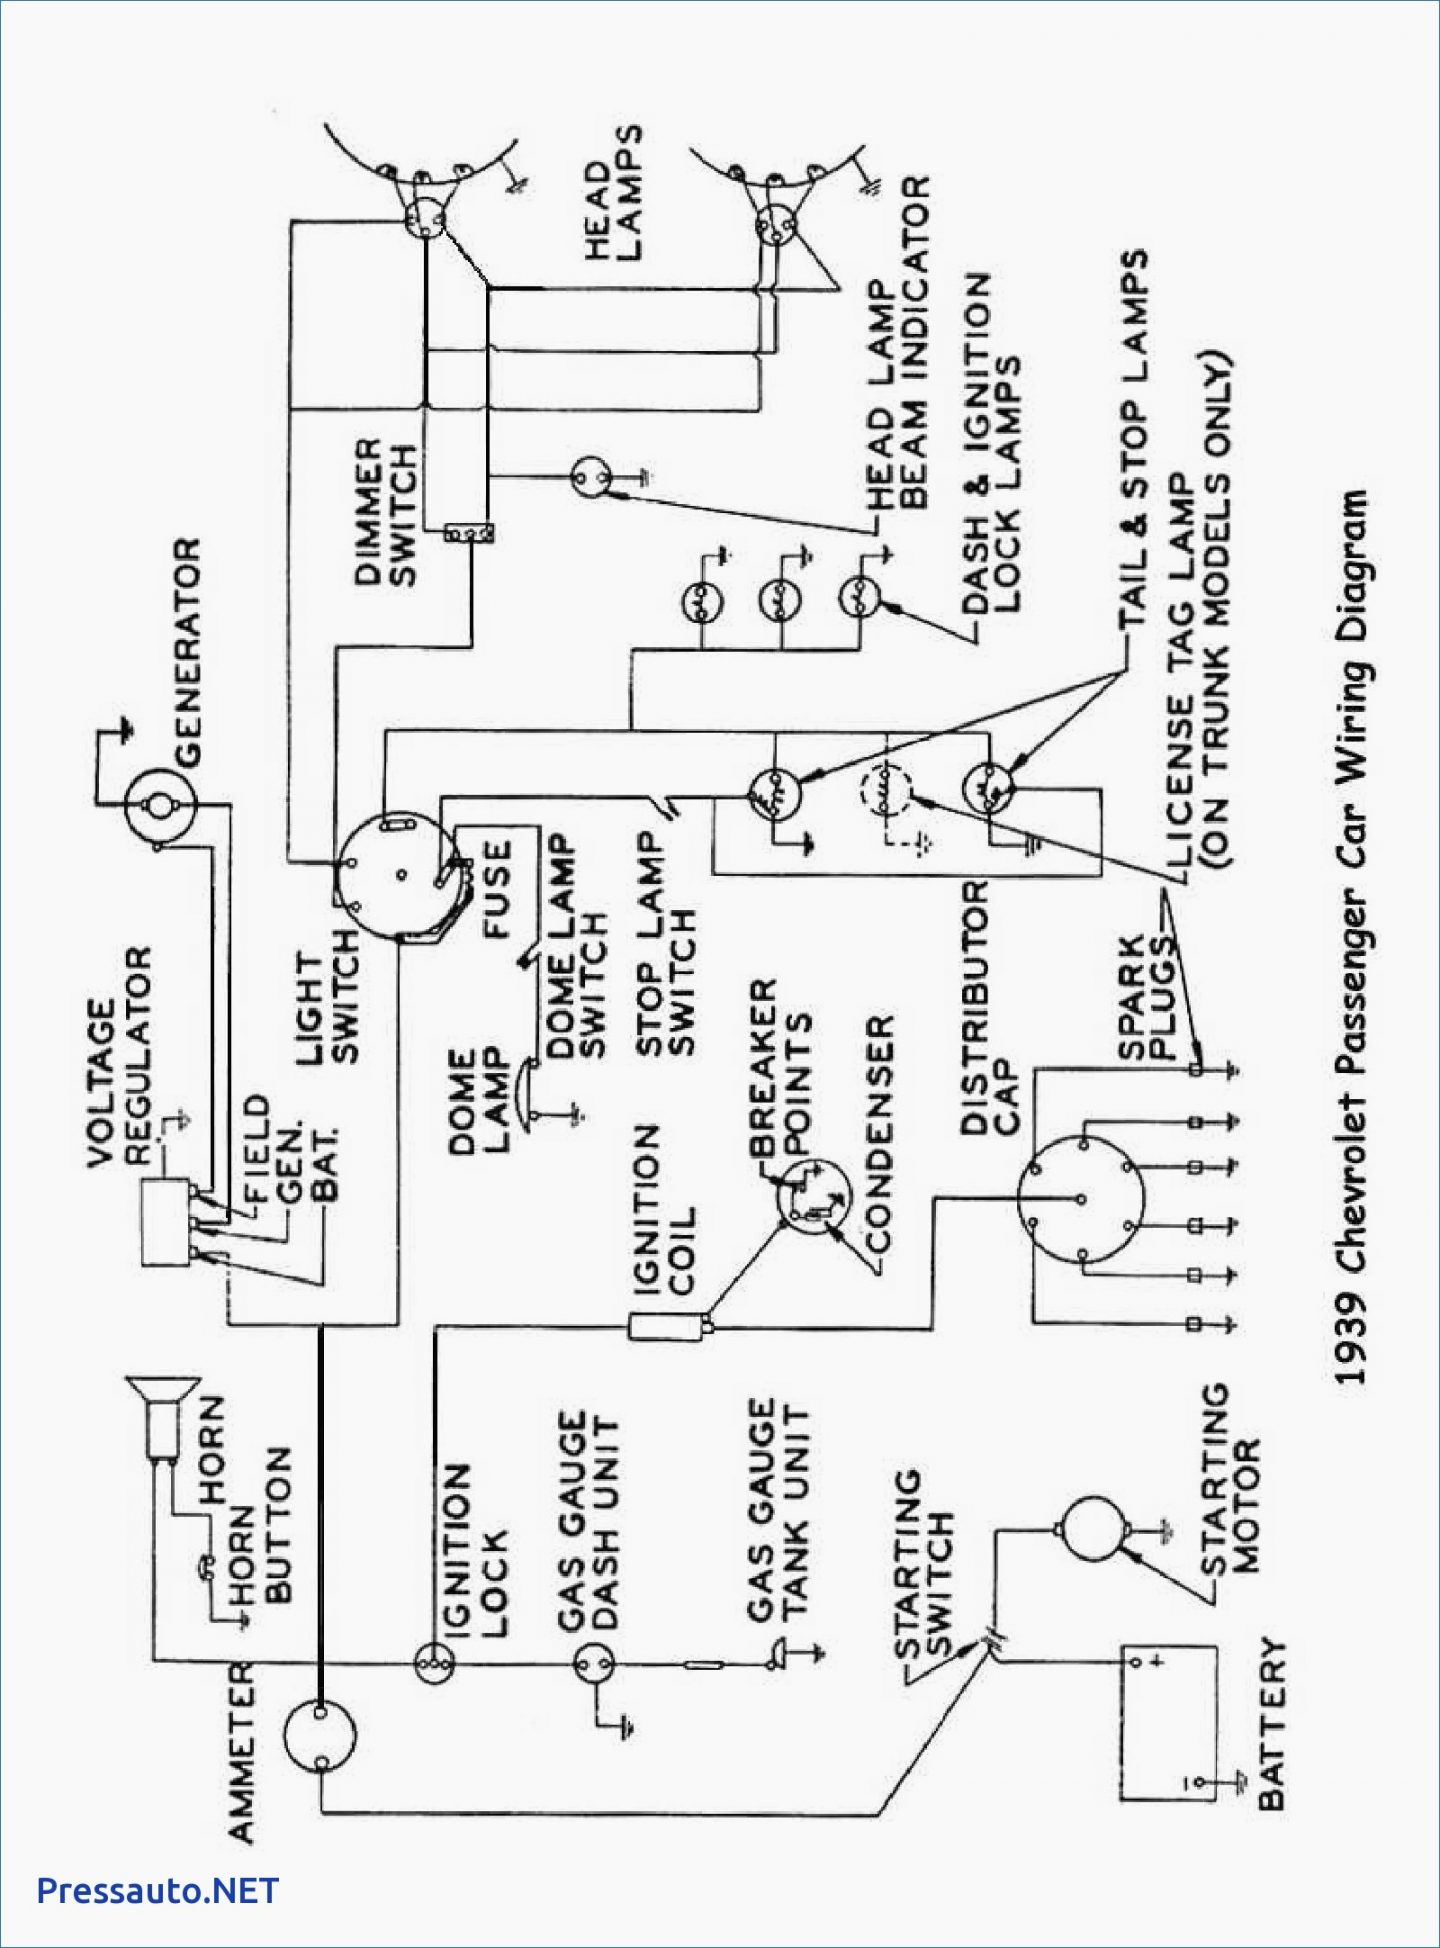 Free Electrical Drawing At For Personal Use Simple House Wiring Diagrams Outlet Get Image About 1440x1948 Welding Machine Diagram Pdf Switch Components Wire